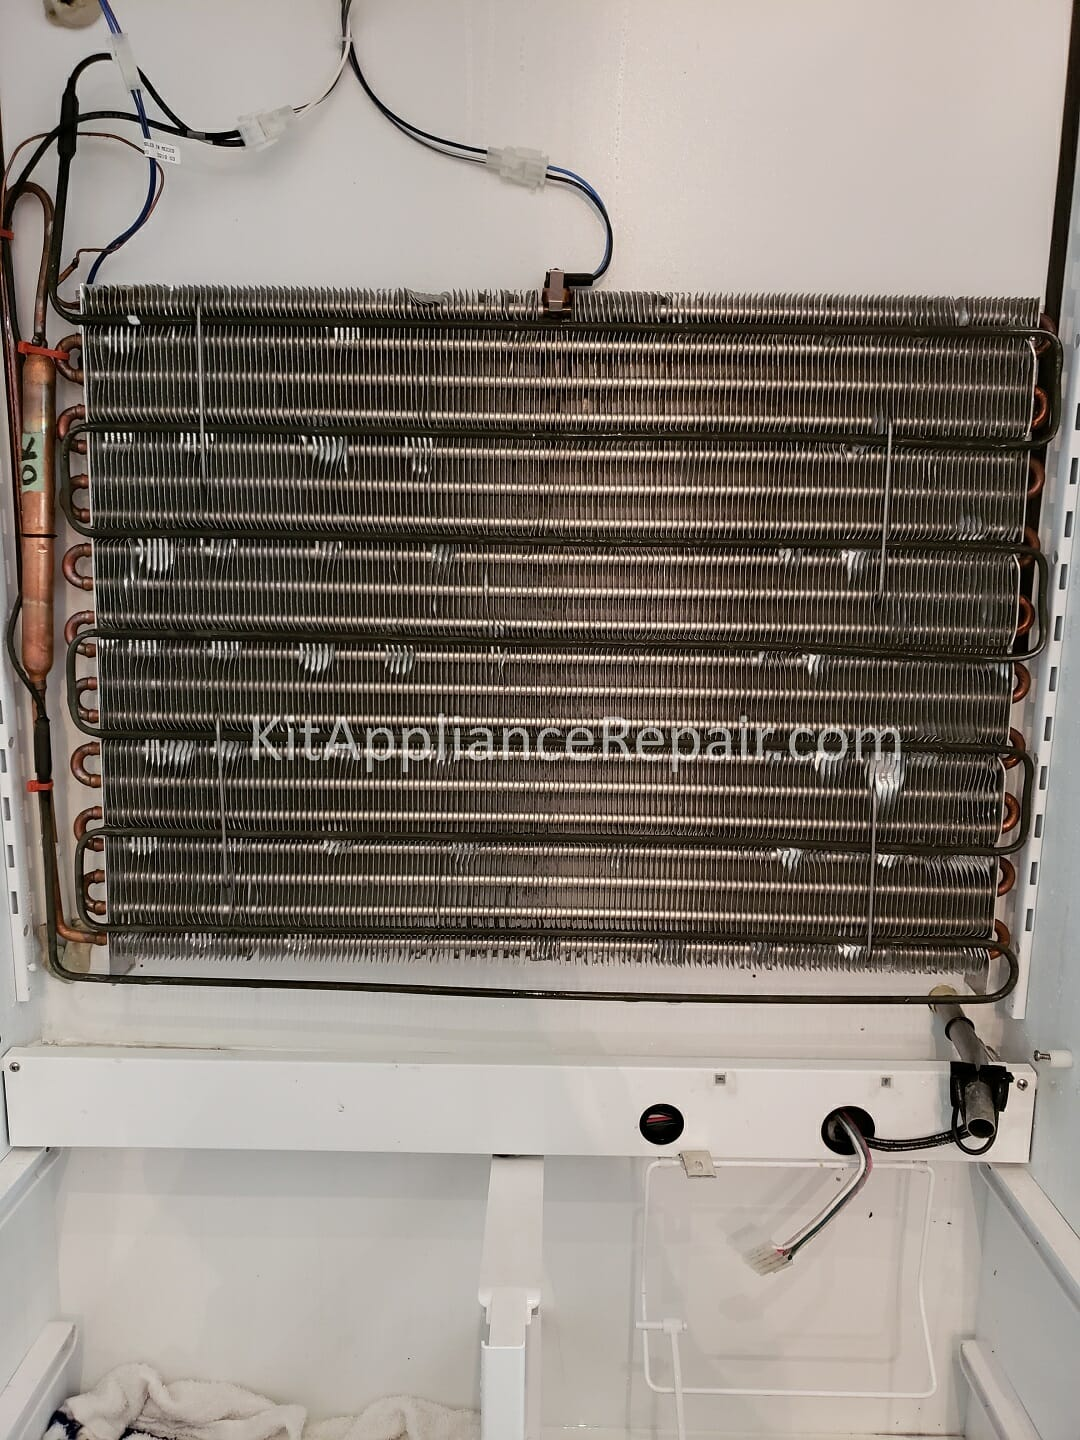 Sub Zero 601f Freezer Not Cold Repair Woodside Ca